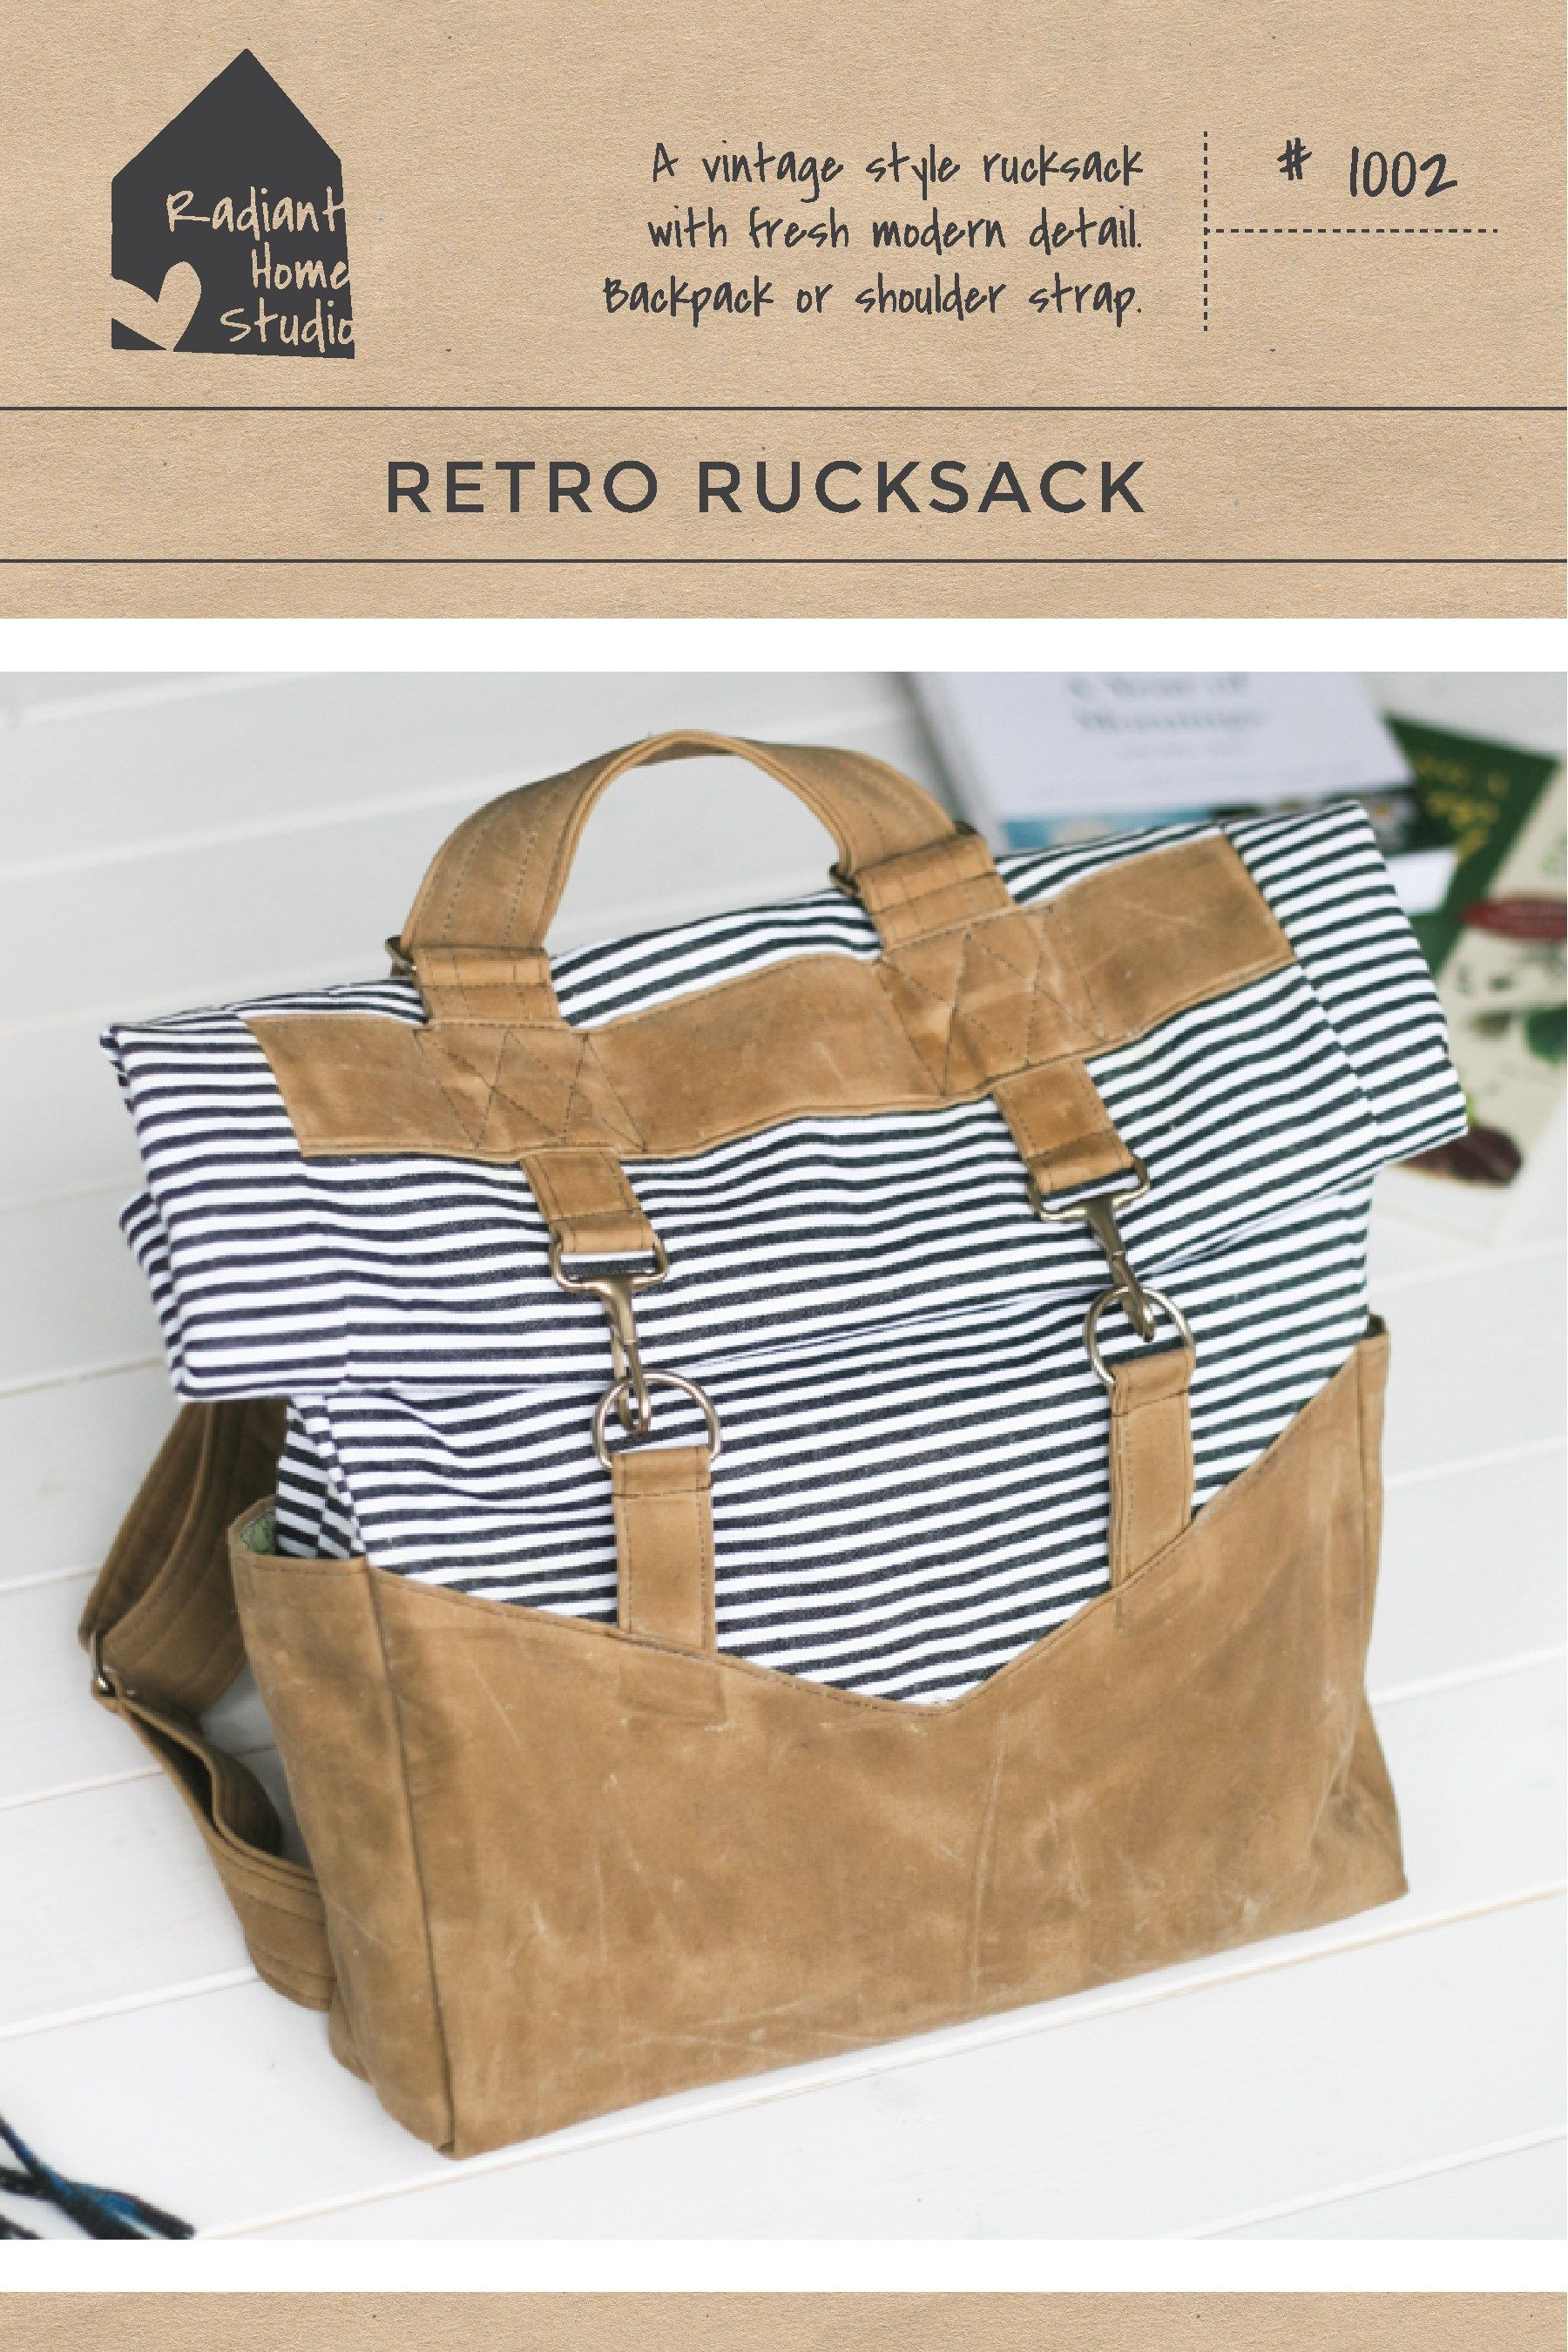 Retro rucksack pattern patterns sewing projects and tutorials the retro rucksack sewing pattern by radiant home studio is a vintage style rucksack with adjustable straps that can be worn as a backpack or shoulder bag jeuxipadfo Choice Image